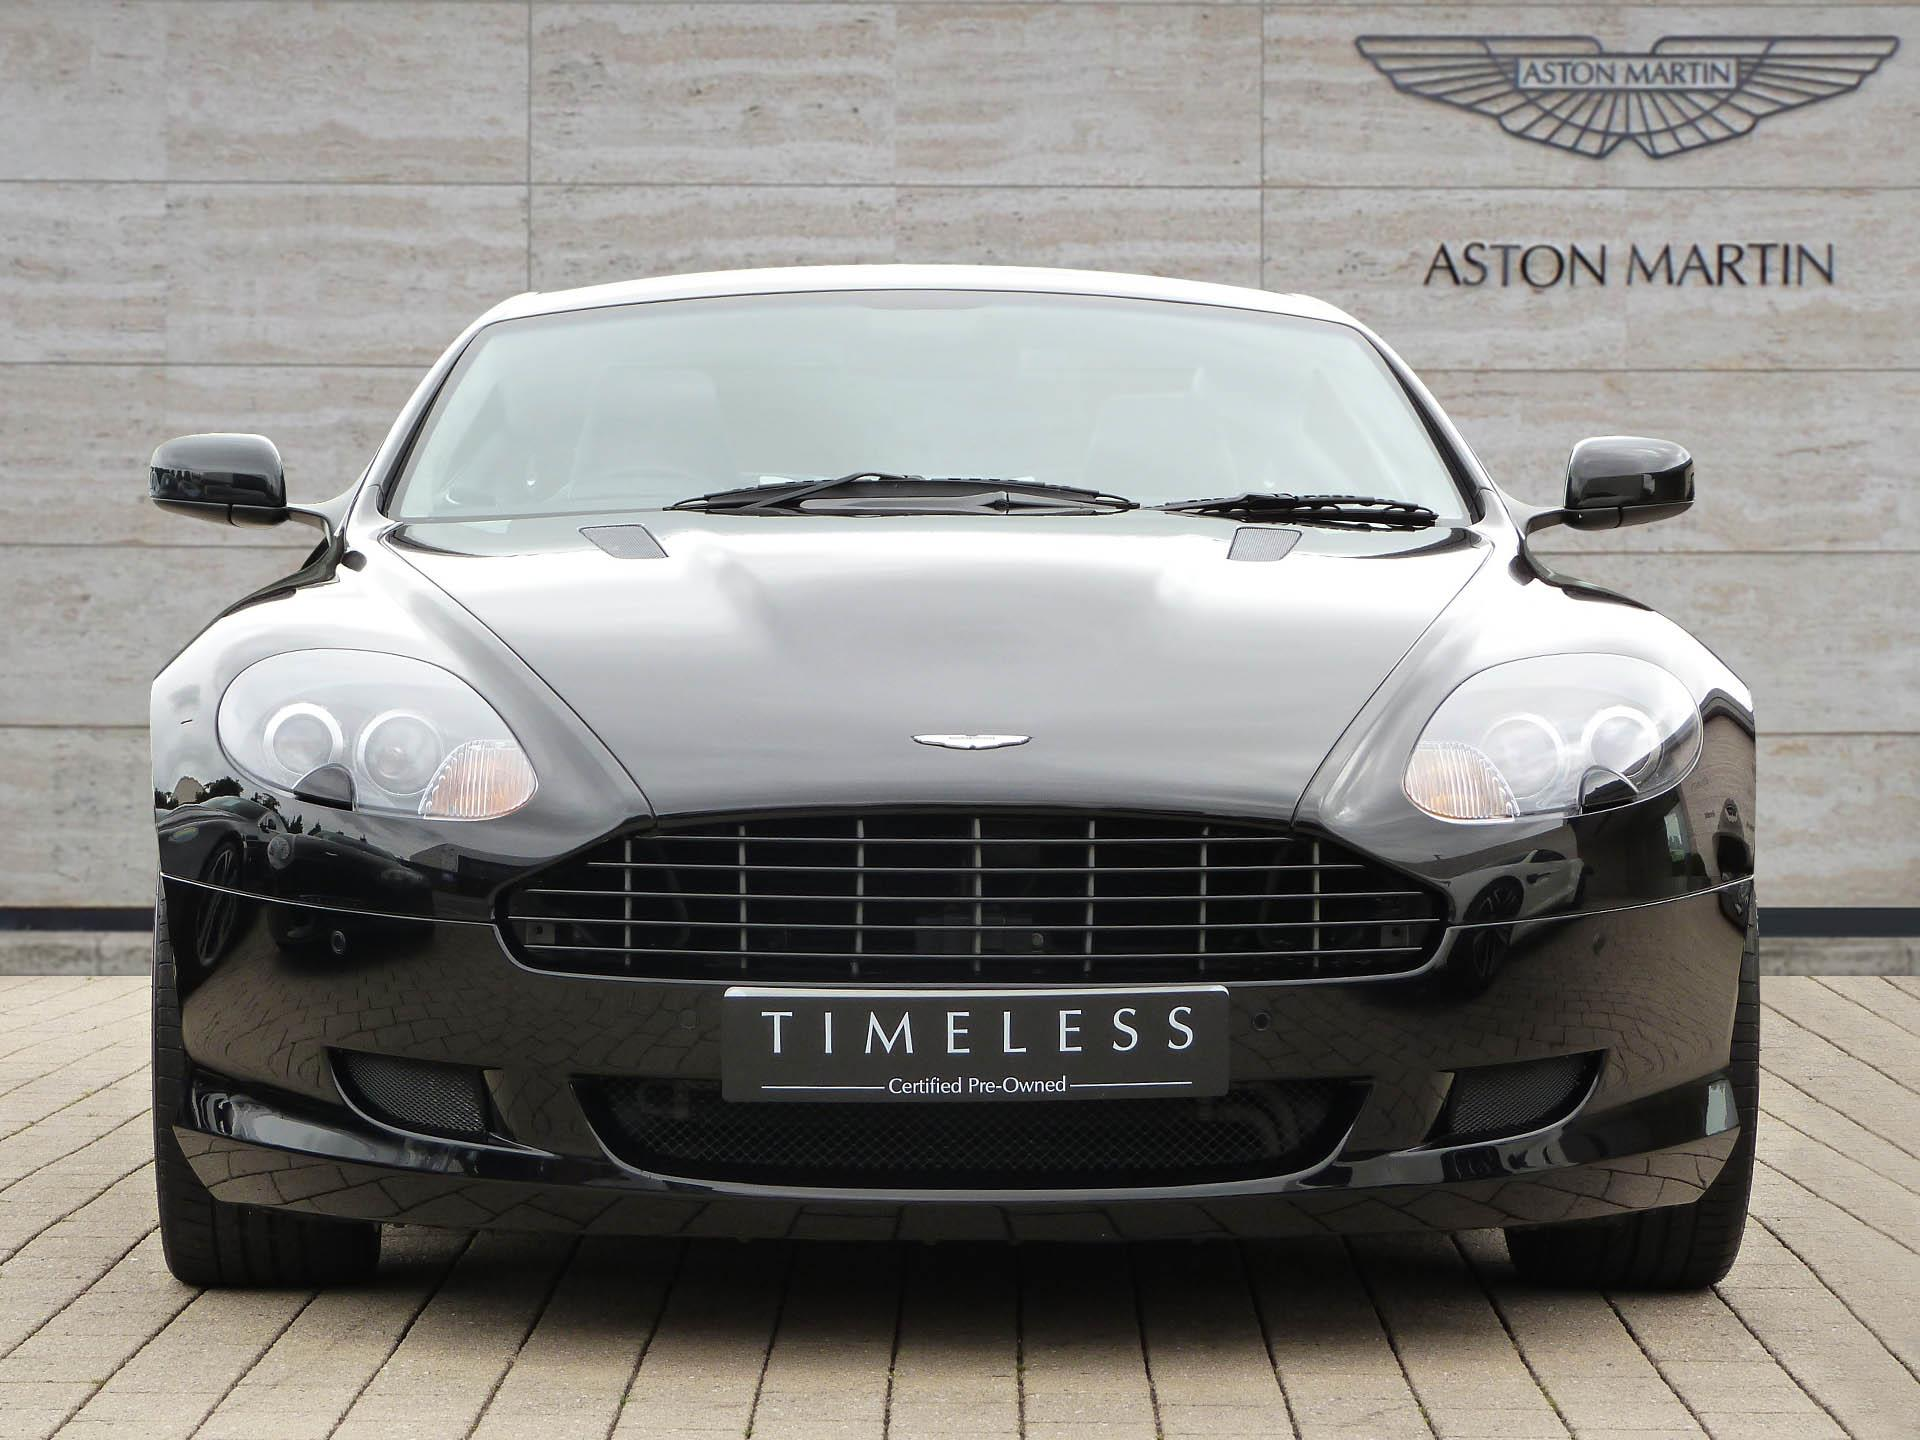 aston martin lagonda pre owned used aston martins car details db9 coupe wa59czn. Black Bedroom Furniture Sets. Home Design Ideas